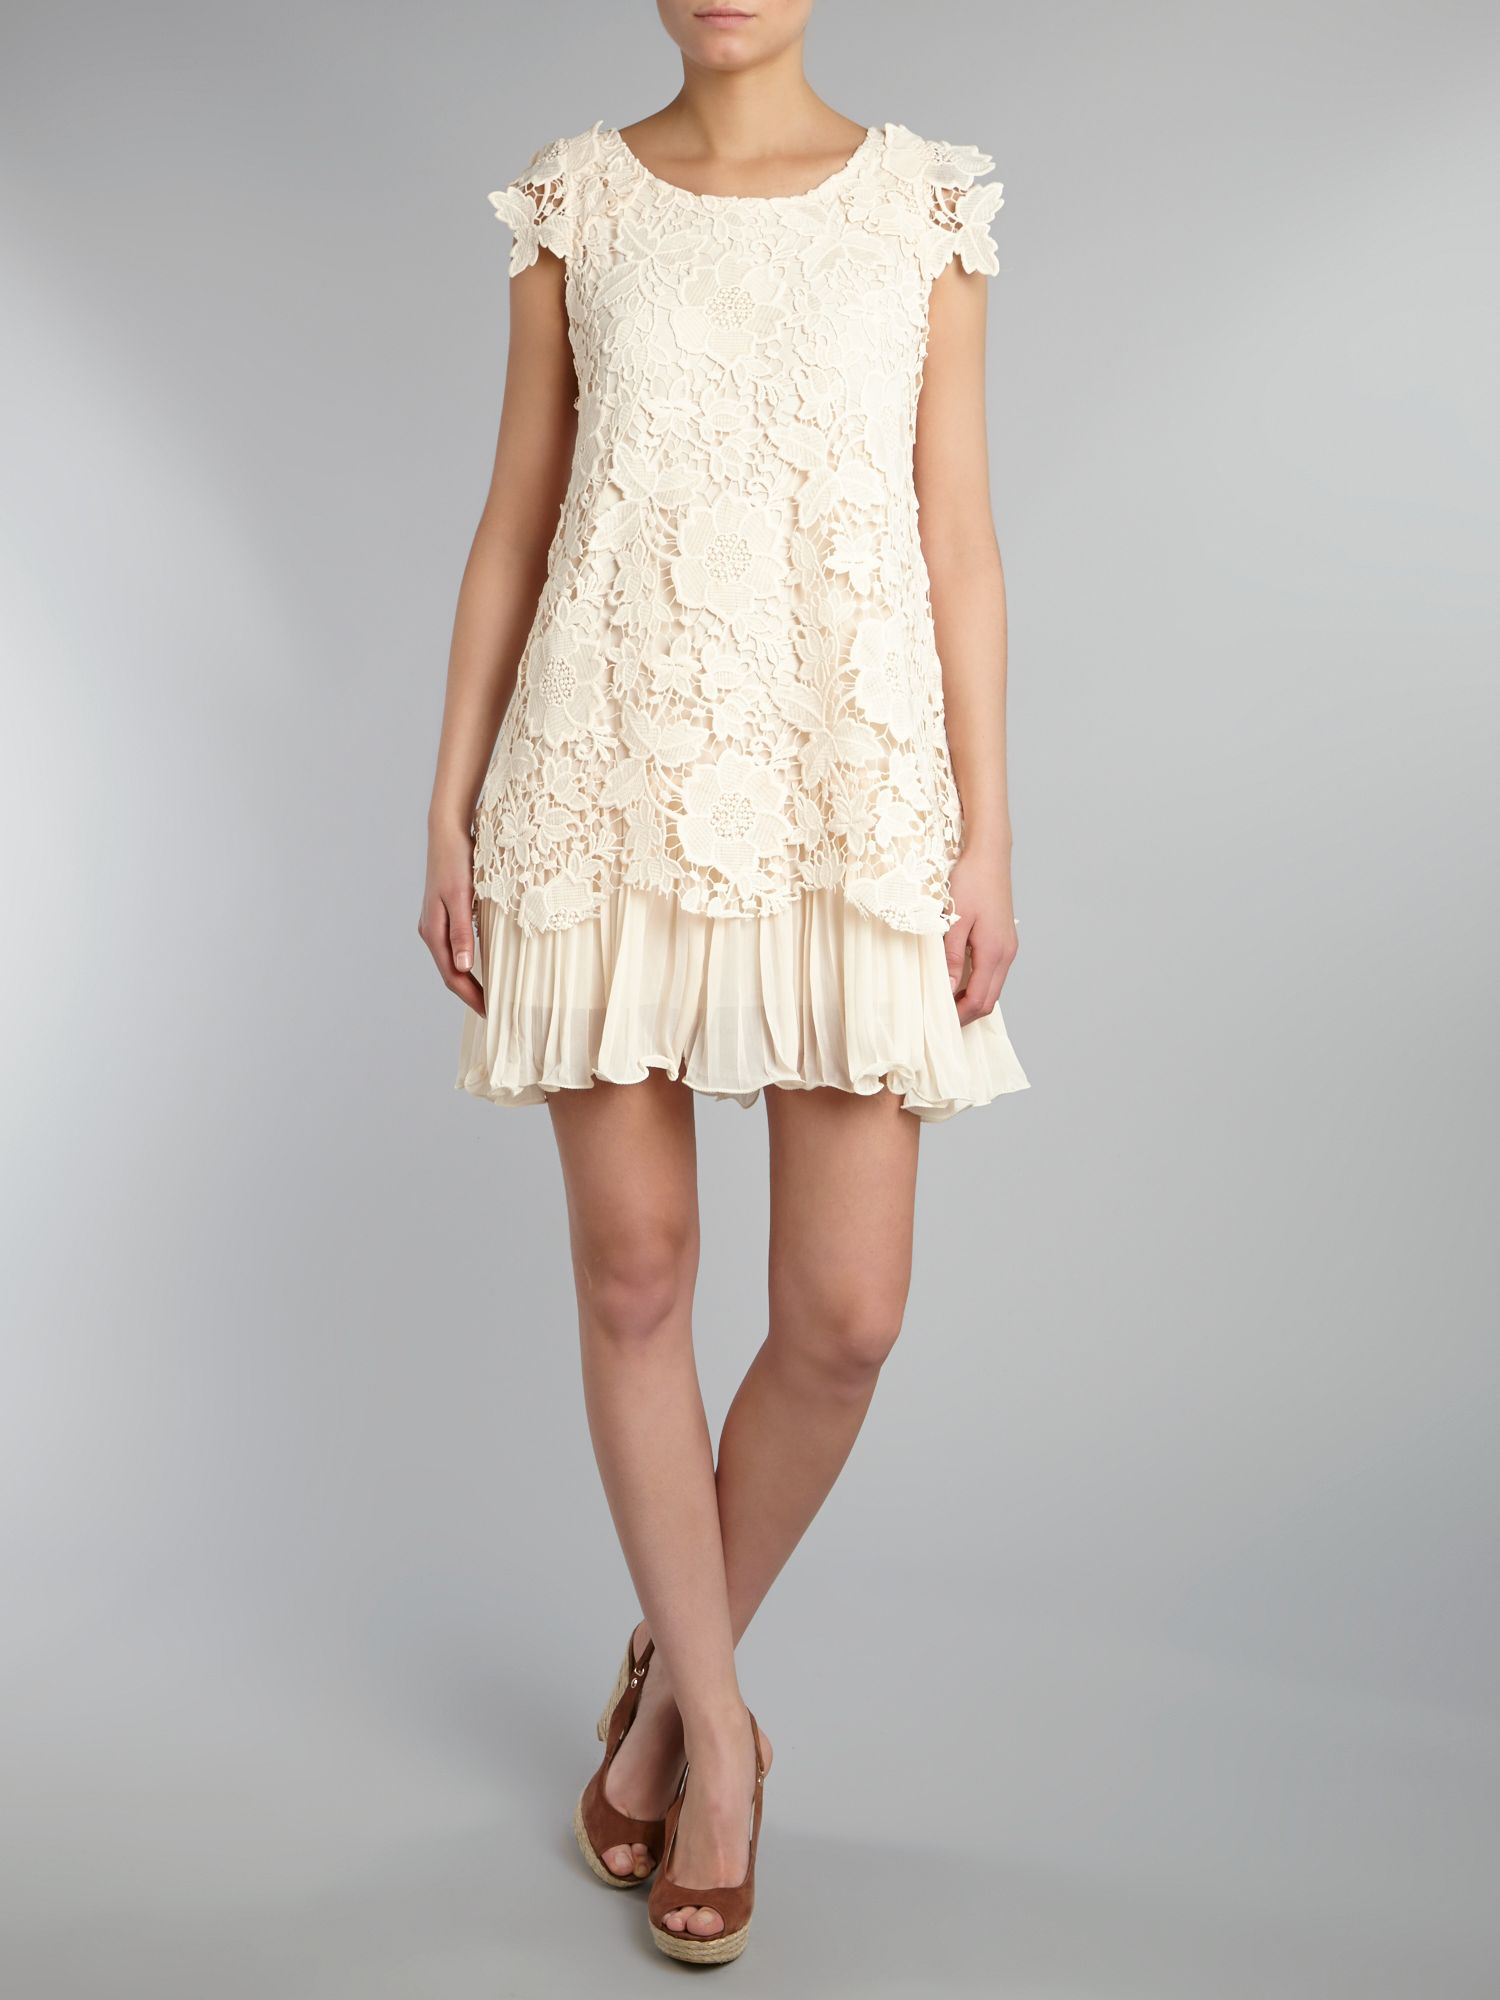 Crochet lace layered dress